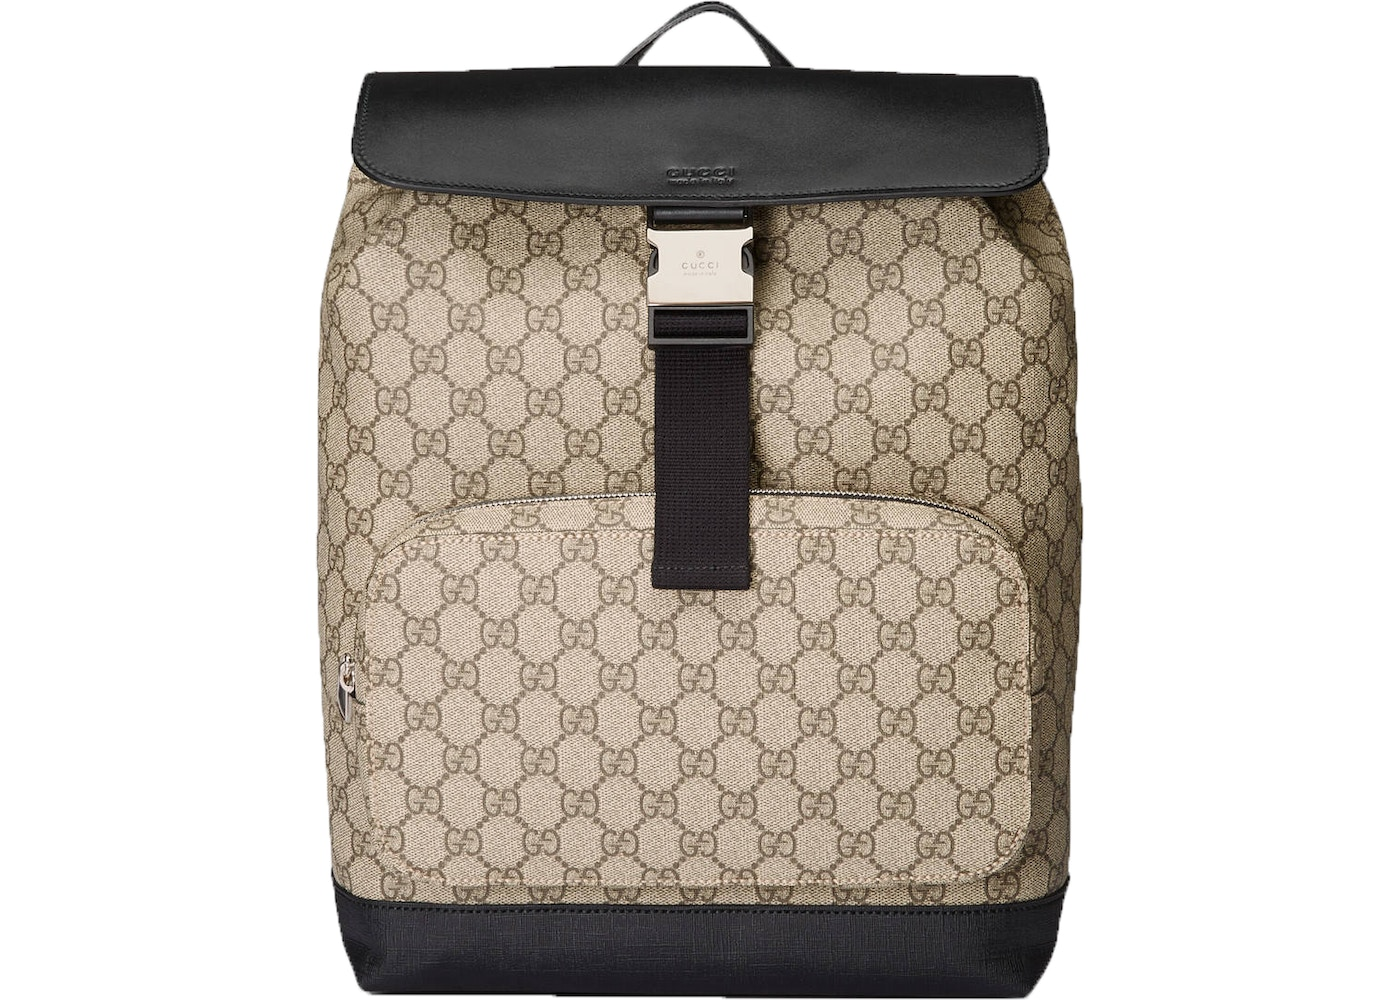 05b98c84662 Gucci Gg Supreme Canvas Backpack Black – Patmo Technologies Limited